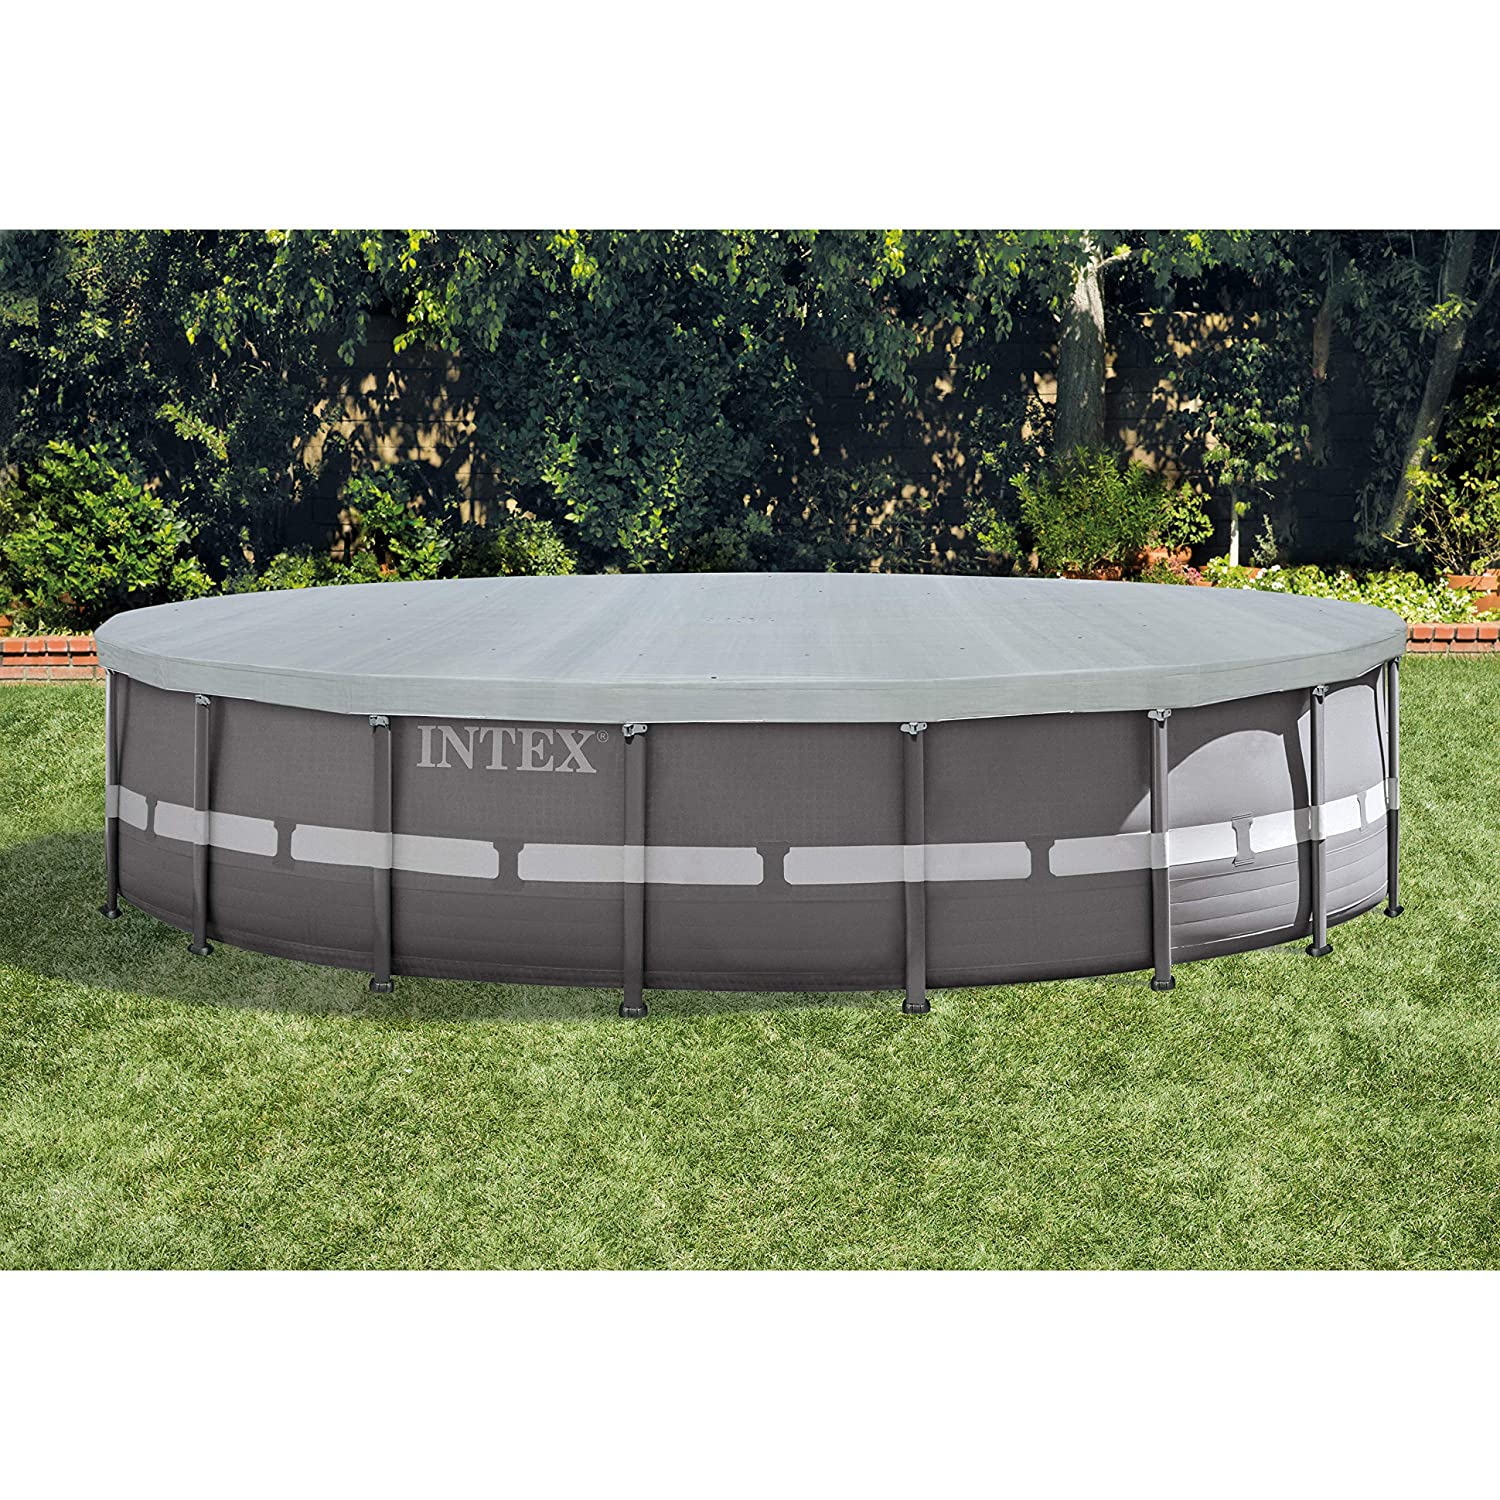 Intex Round Metal Frame Pool Cover Blue 10 ft